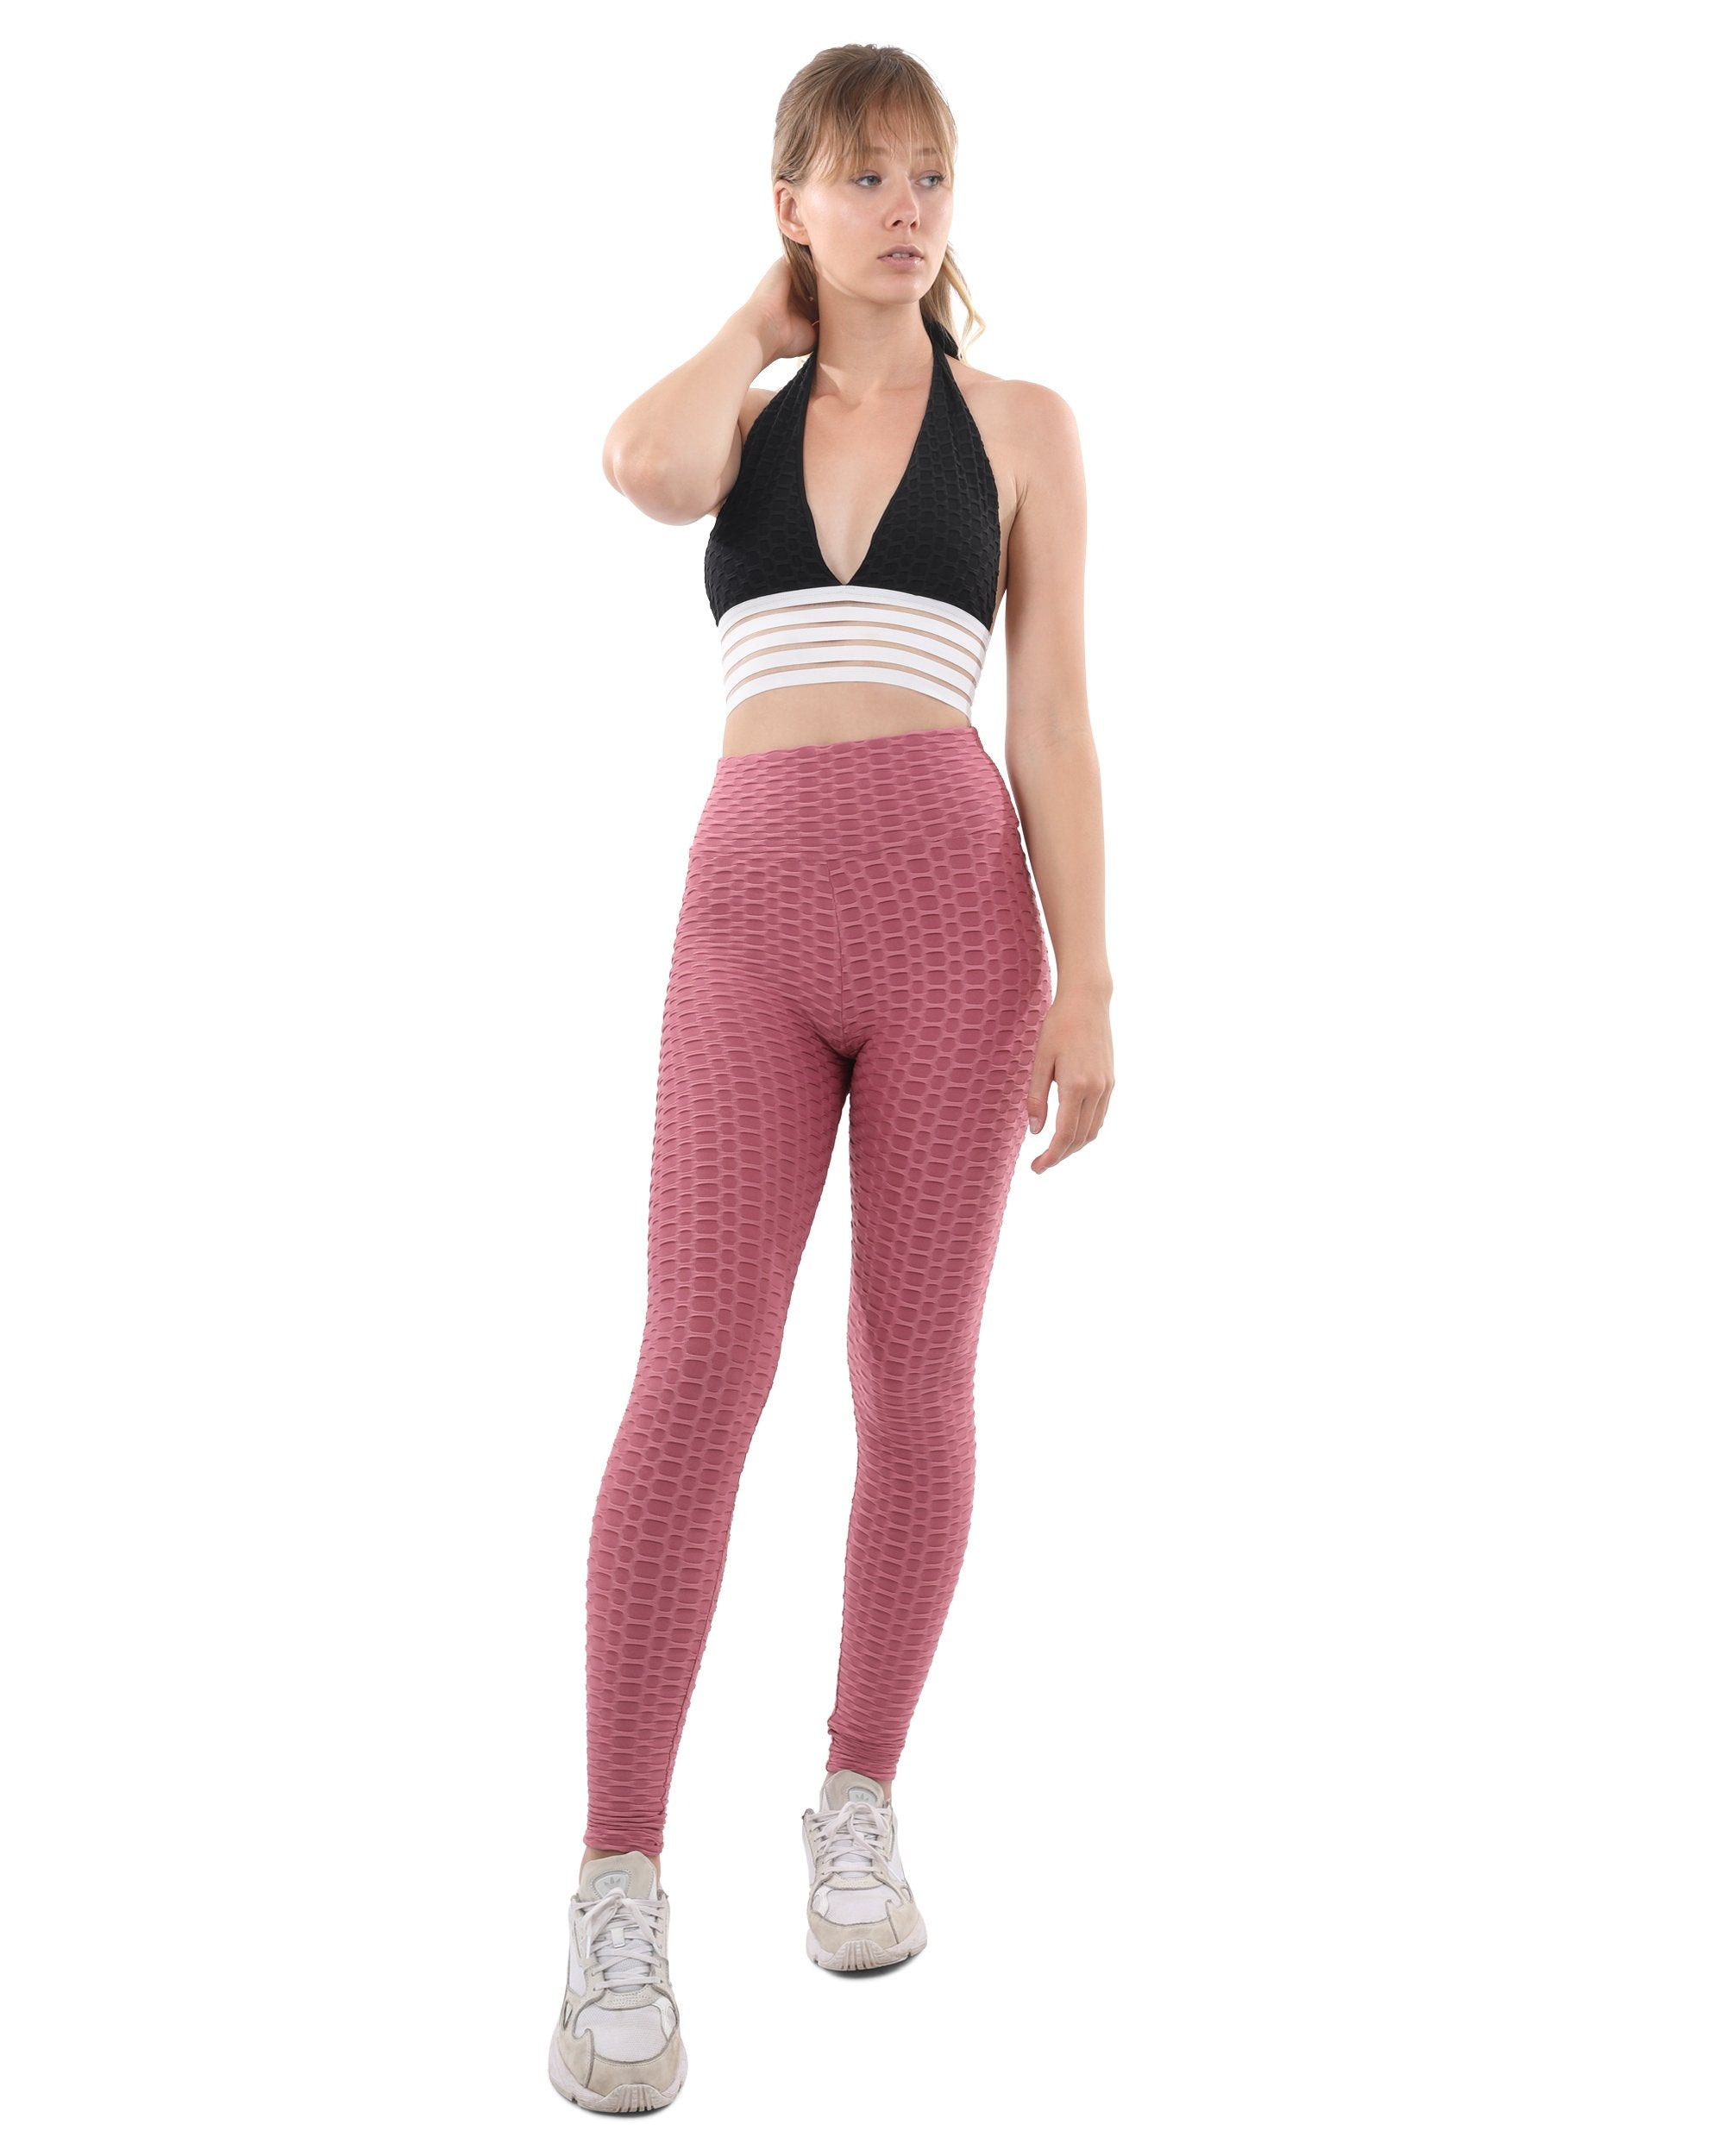 Sea Breeze Leggings